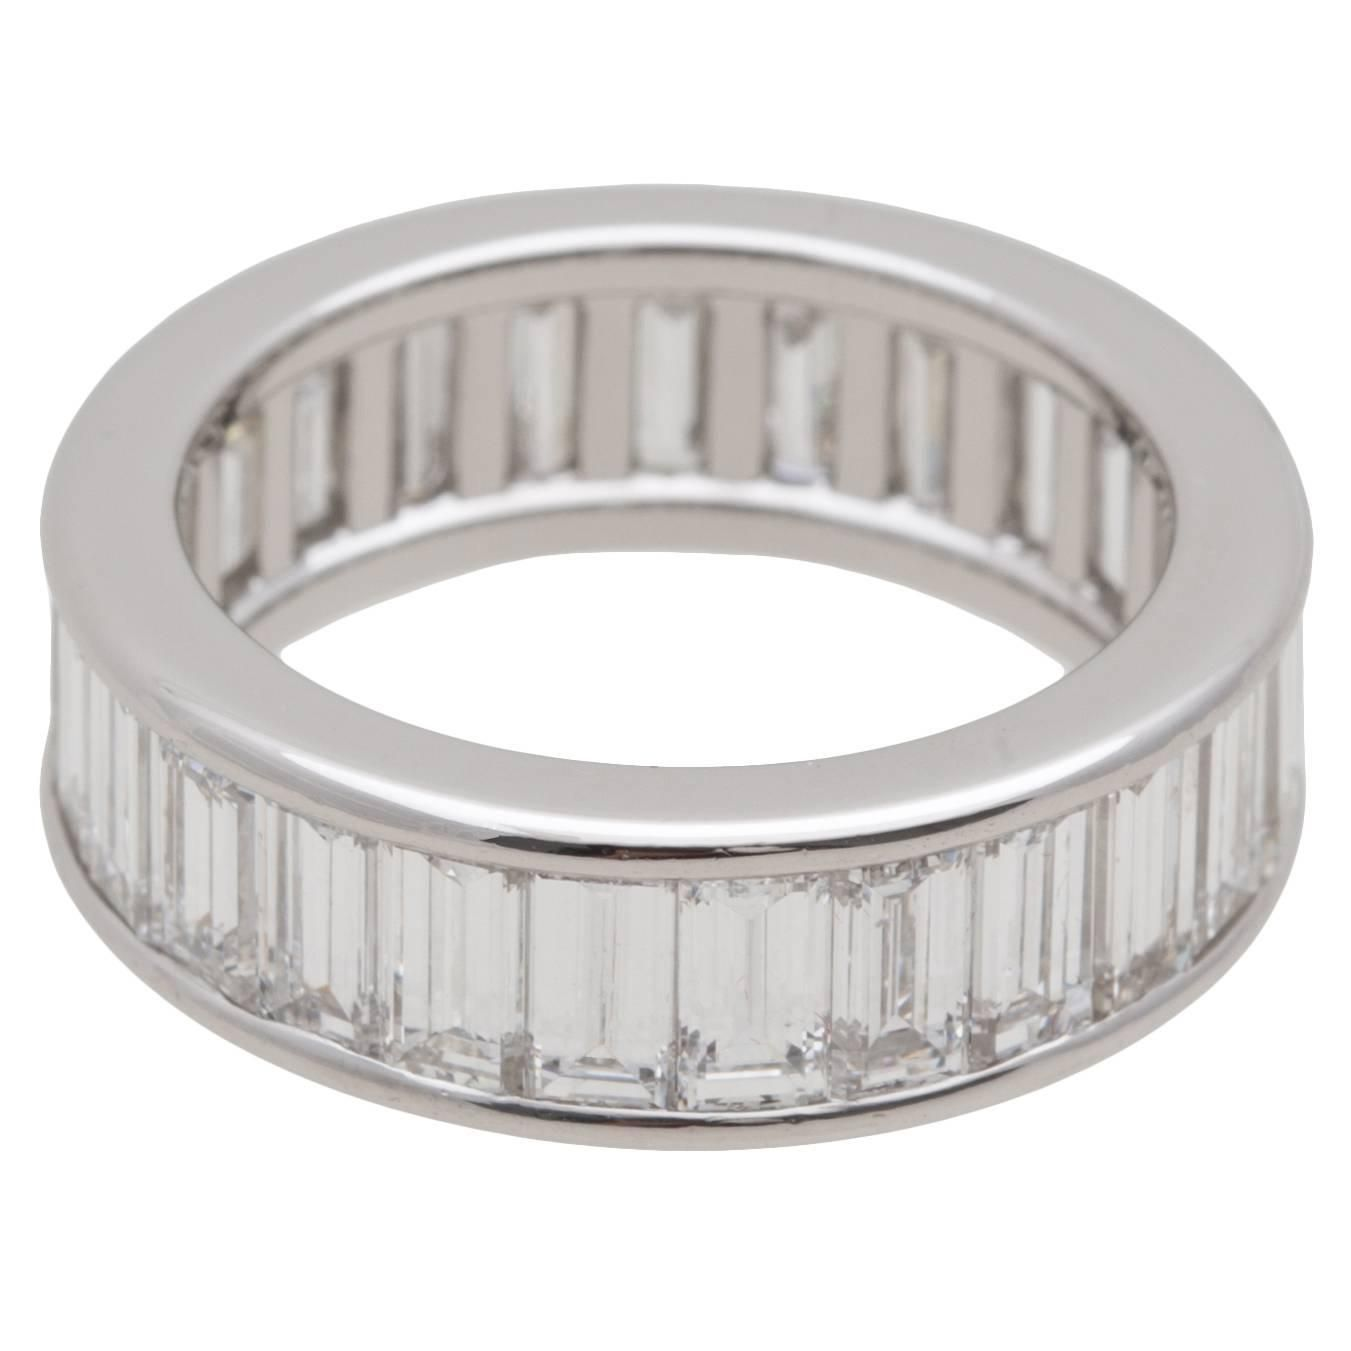 Cartier Diamond Baguette Platinum Eternity Wedding Ring | From a unique collection of vintage wedding rings at https://www.1stdibs.com/jewelry/rings/wedding-rings/